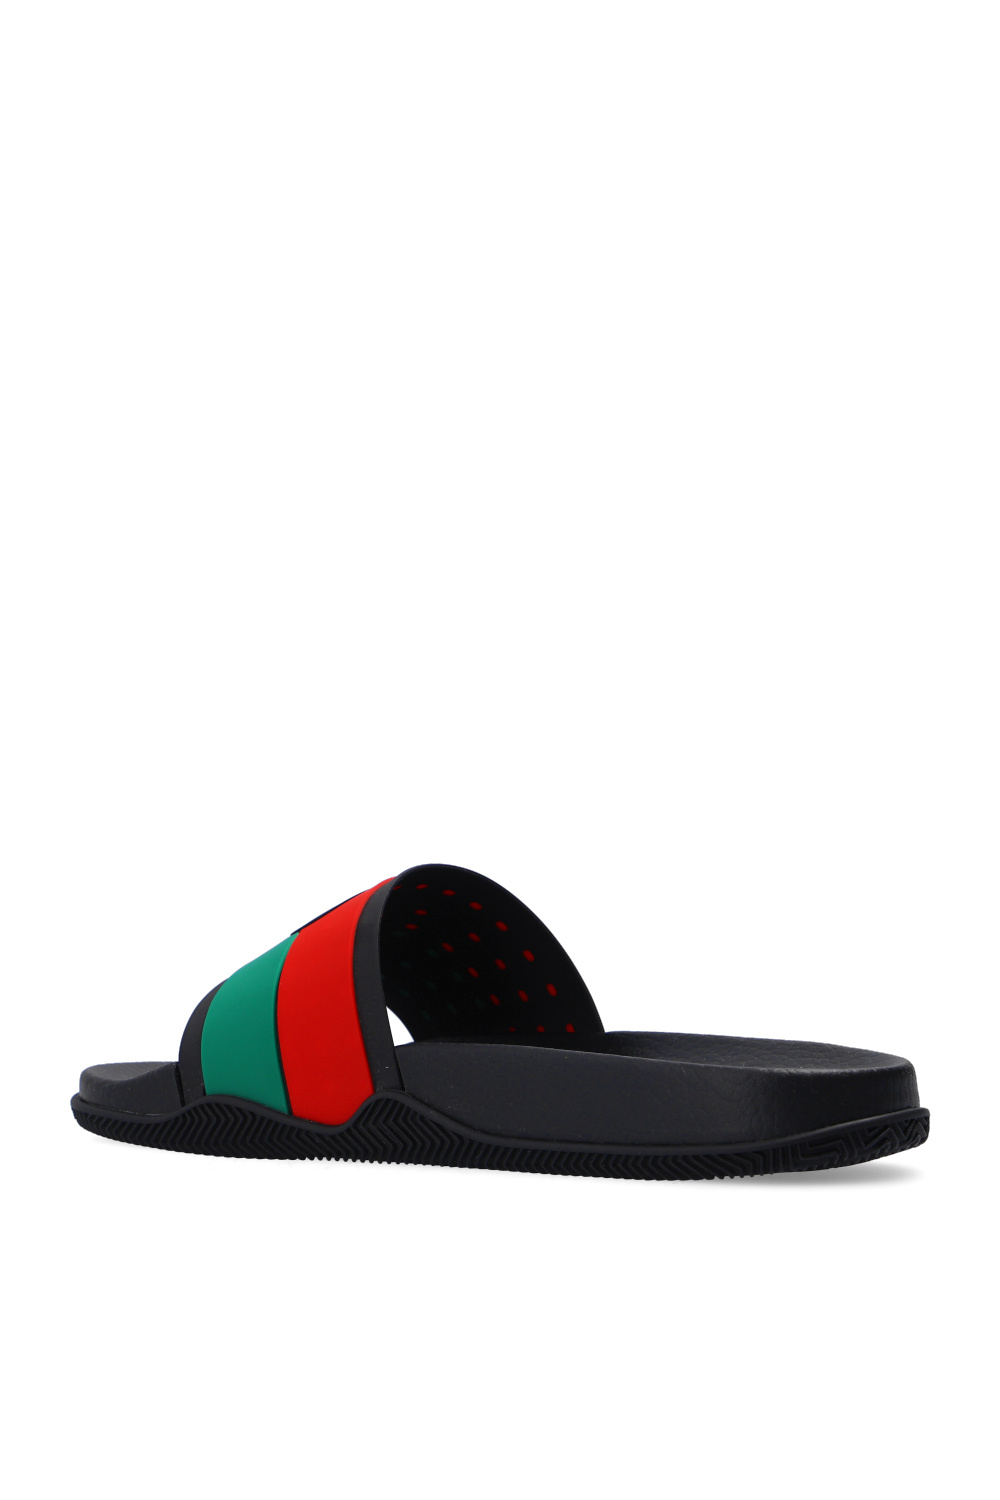 Gucci Slides with logo